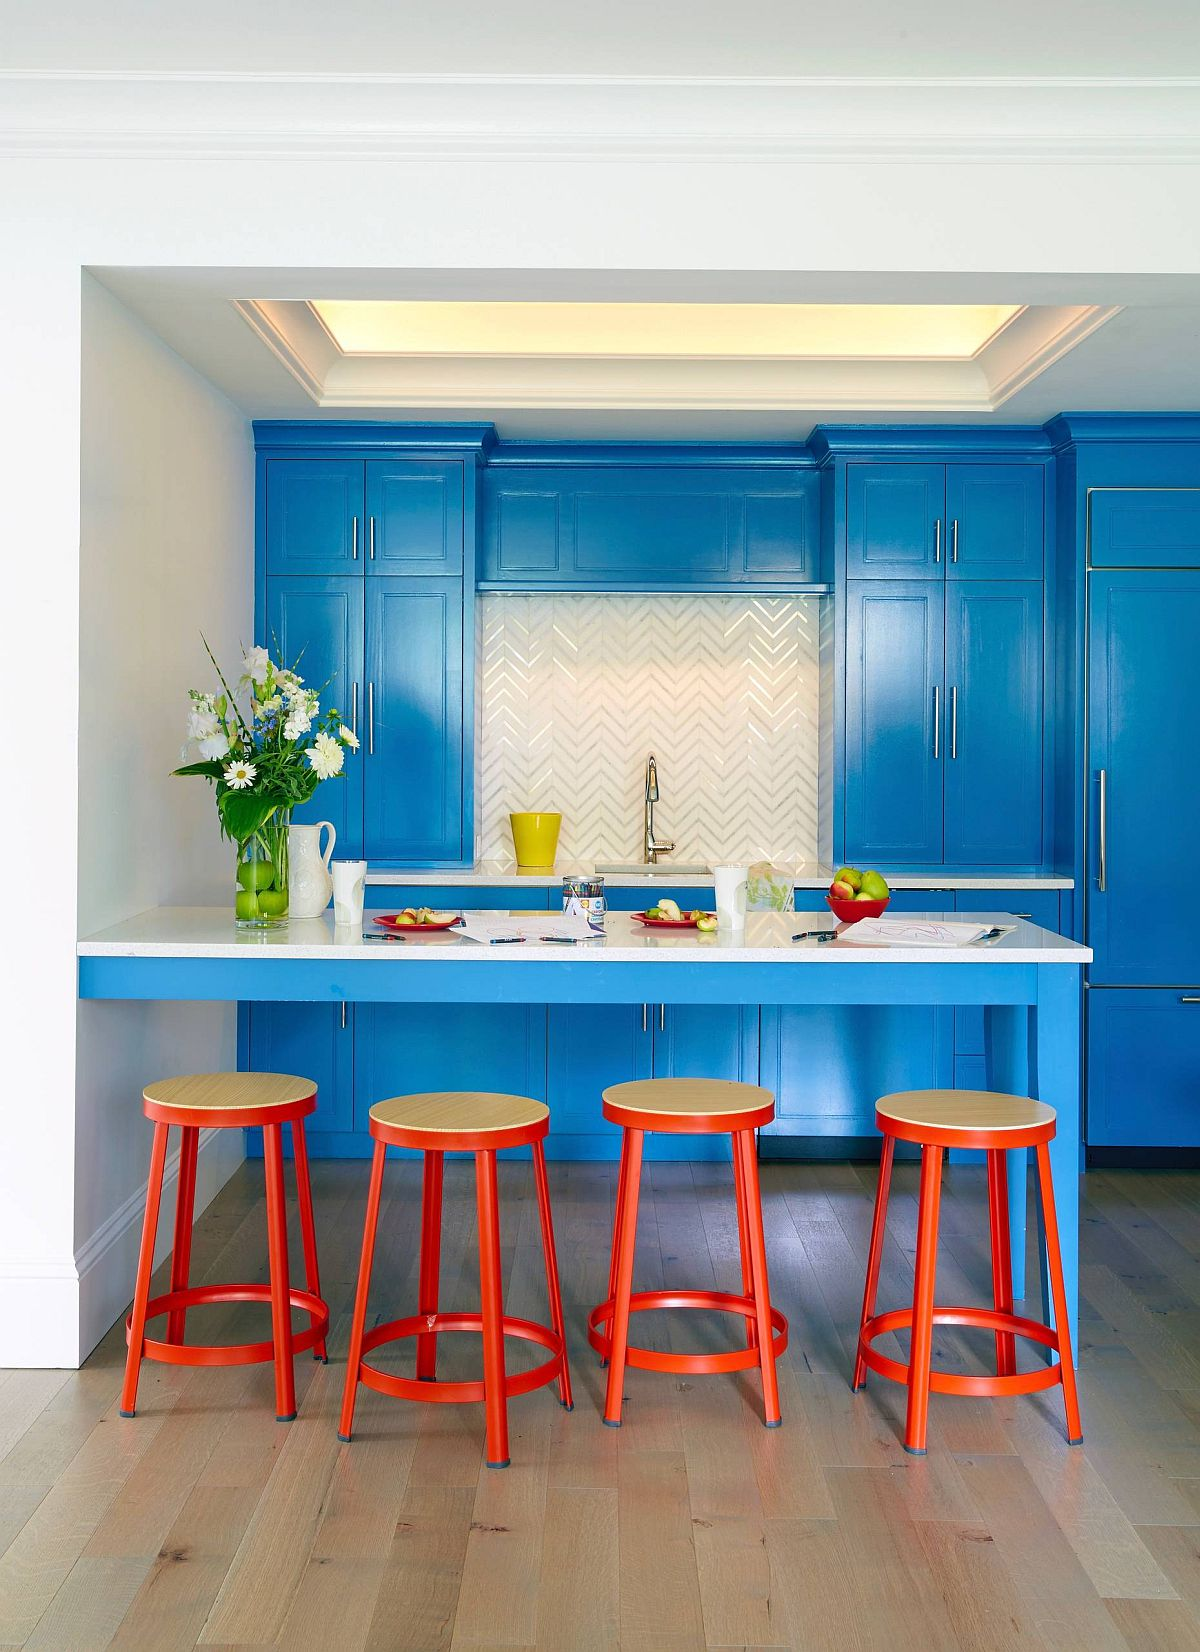 Eclectic-blend-og-blue-and-orange-inside-the-vivacious-NYC-kitchen-with-ample-storage-space-58849